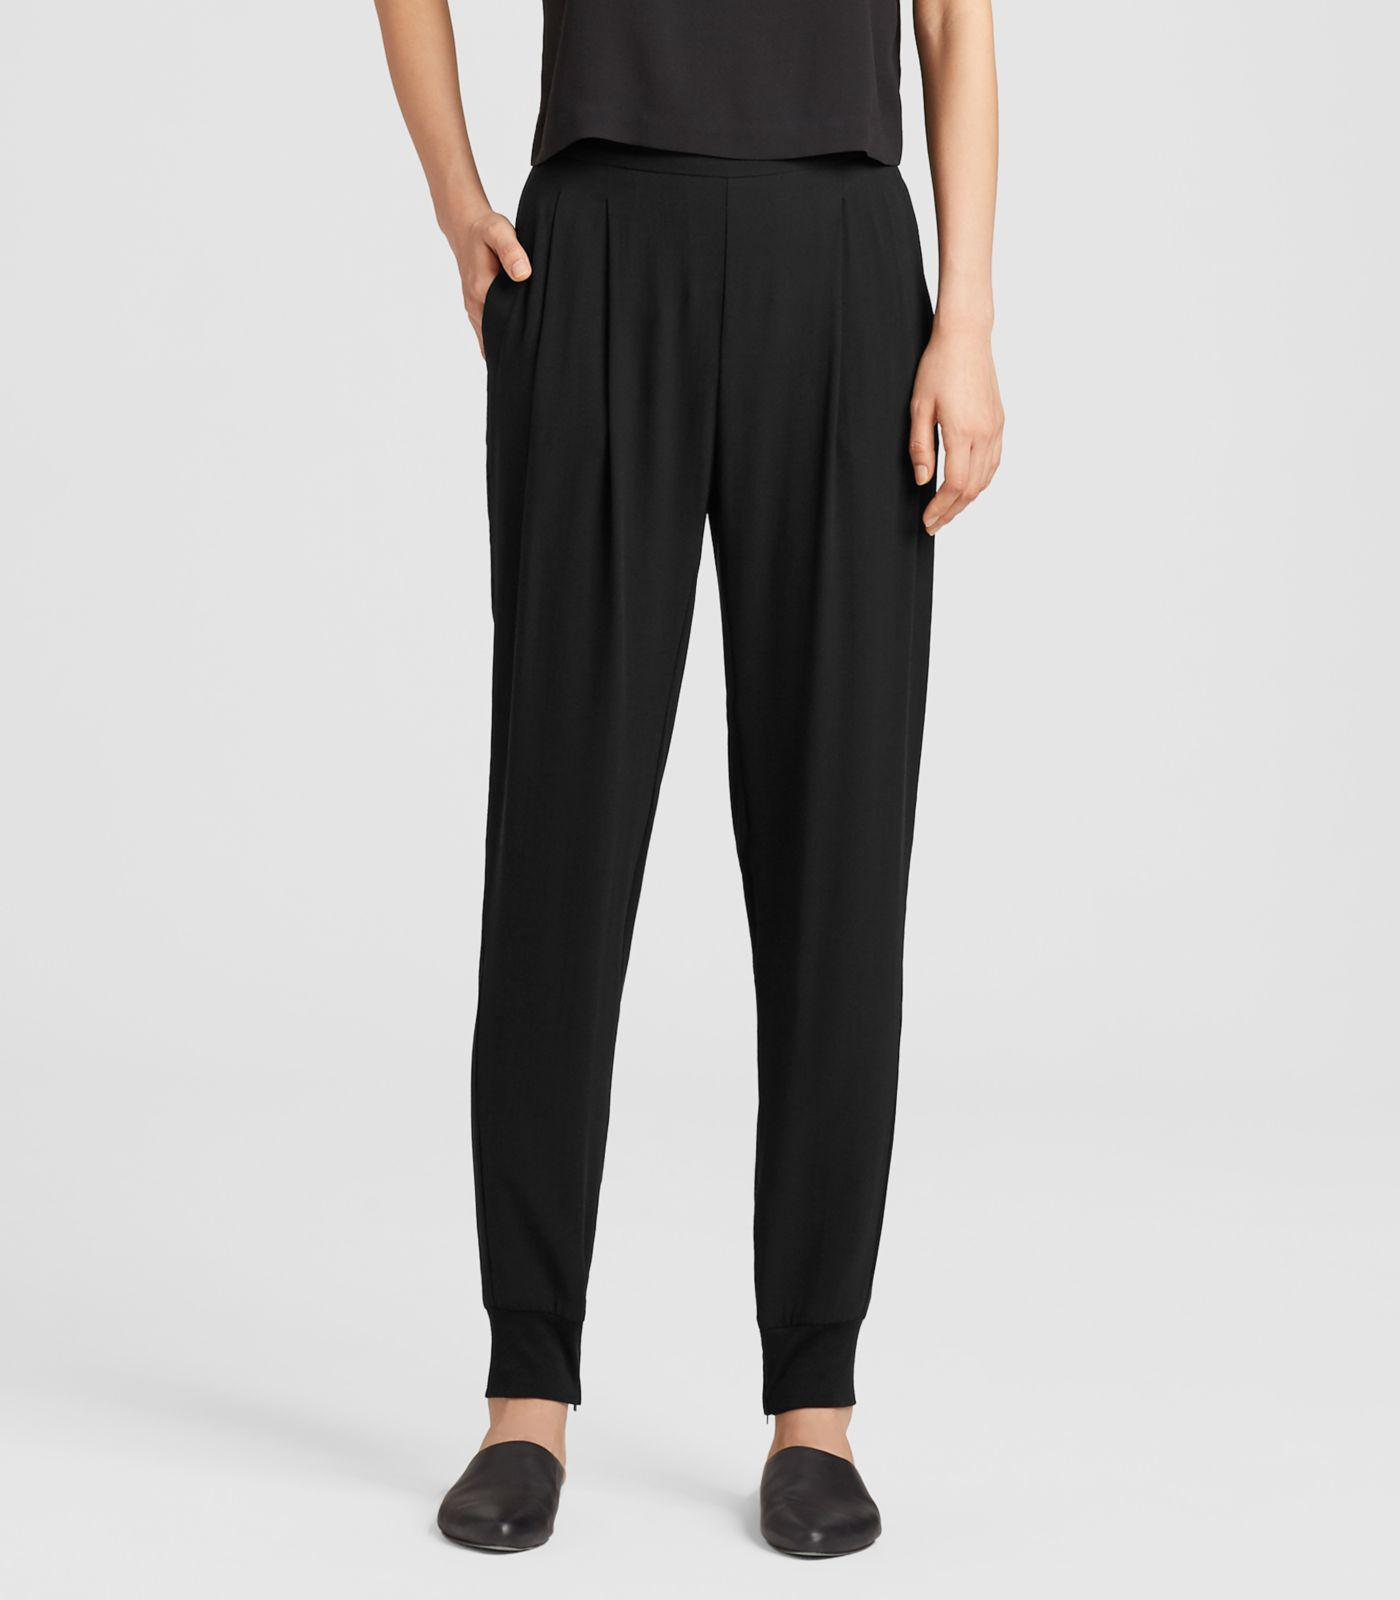 10db0b41a2e Eileen Fisher - Black Silk Georgette Crepe Slouchy Pant With Cuffs - Lyst.  View fullscreen